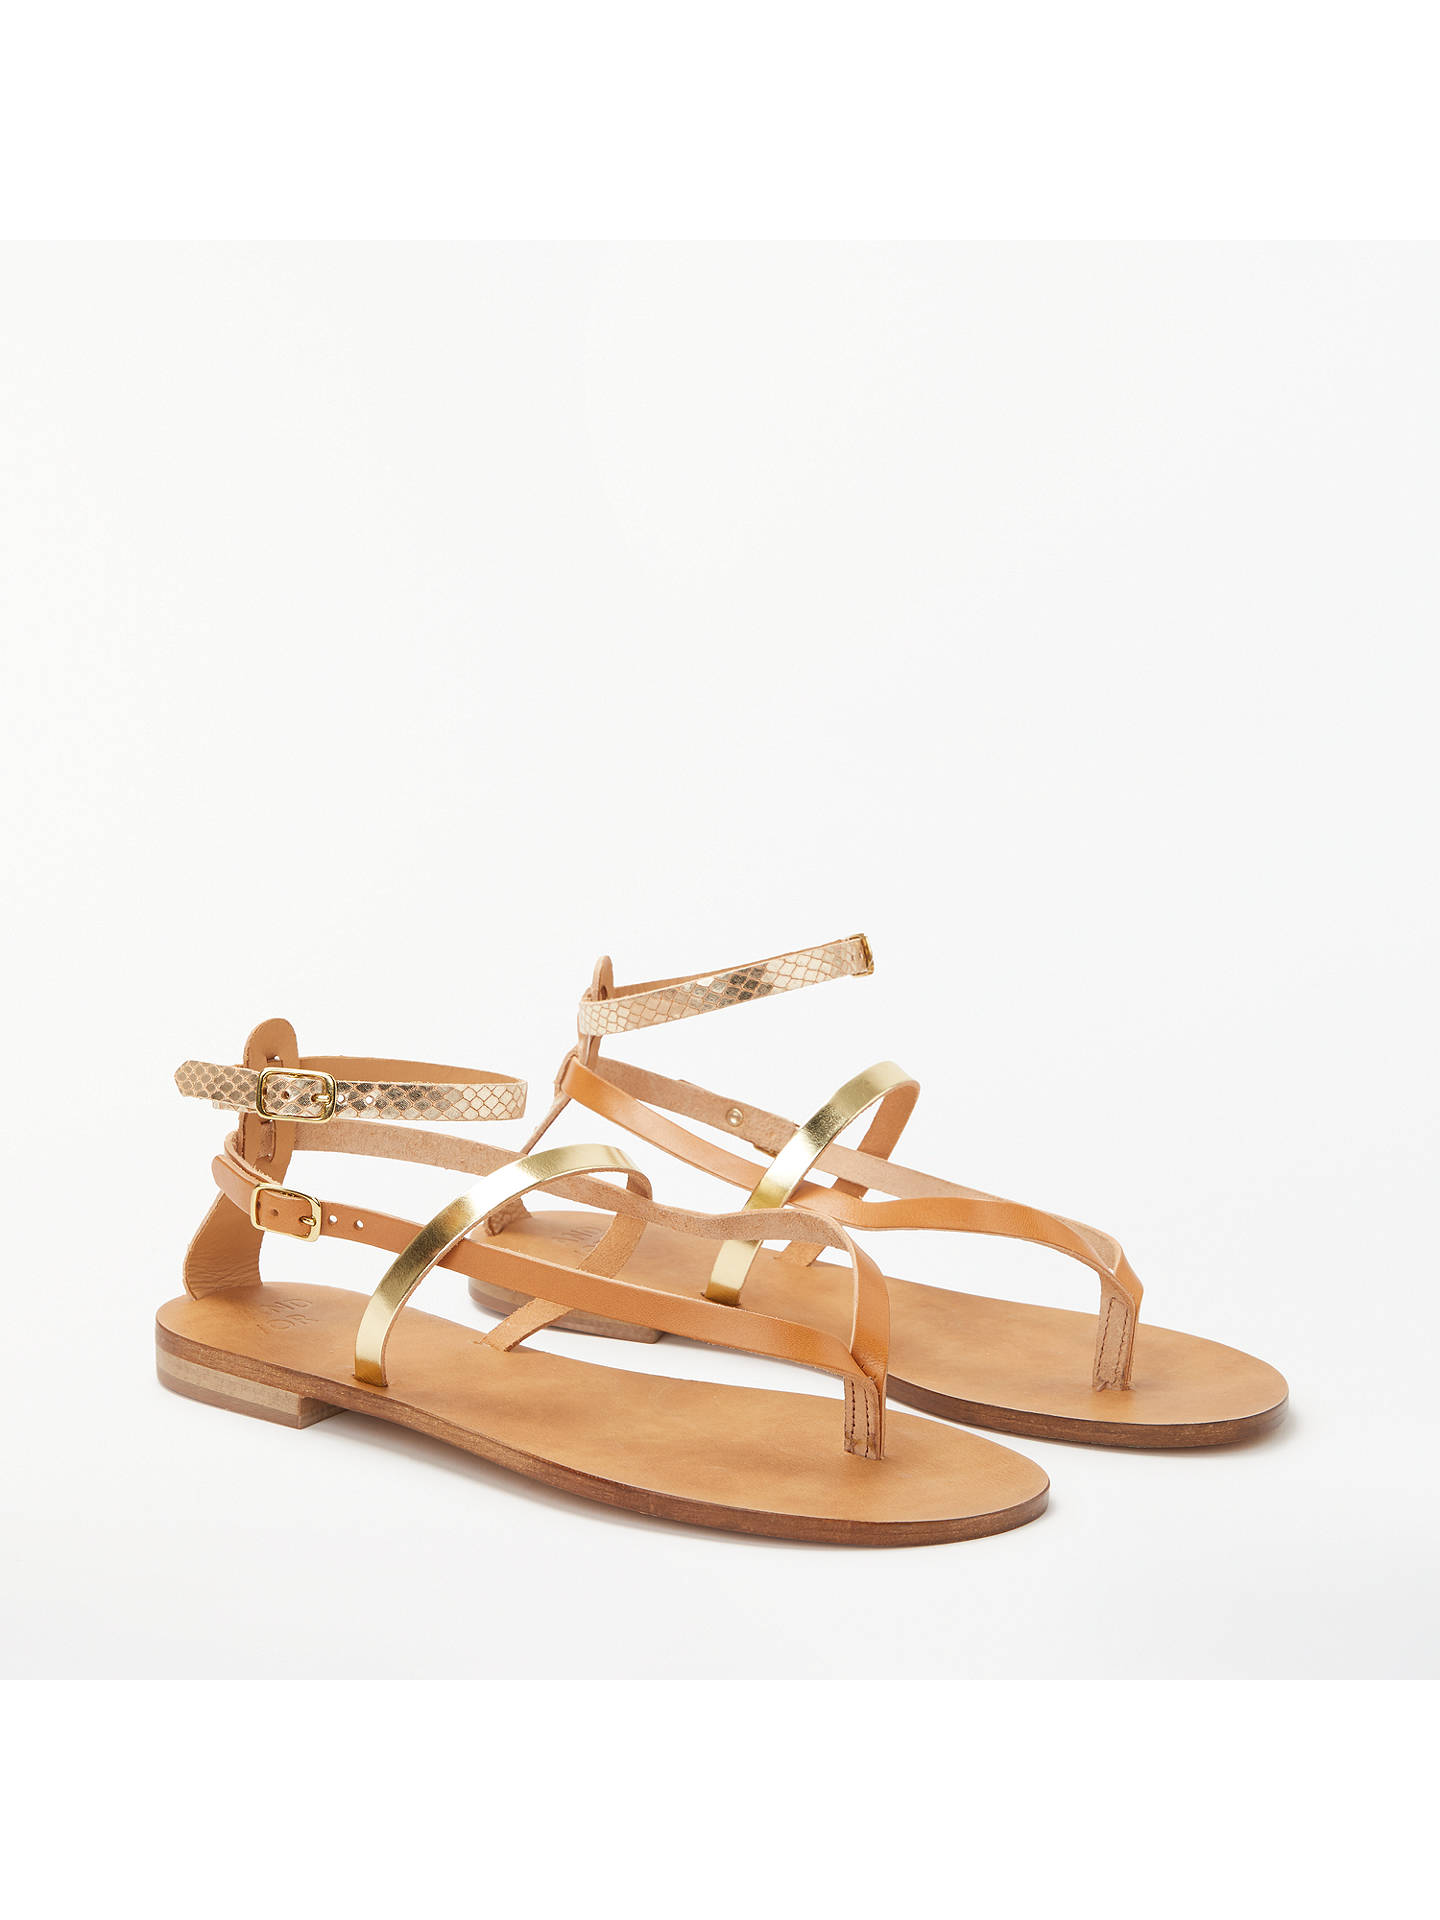 BuyAND/OR Libby Multi Strap Sandals, Tan Leather, 4 Online at johnlewis.com